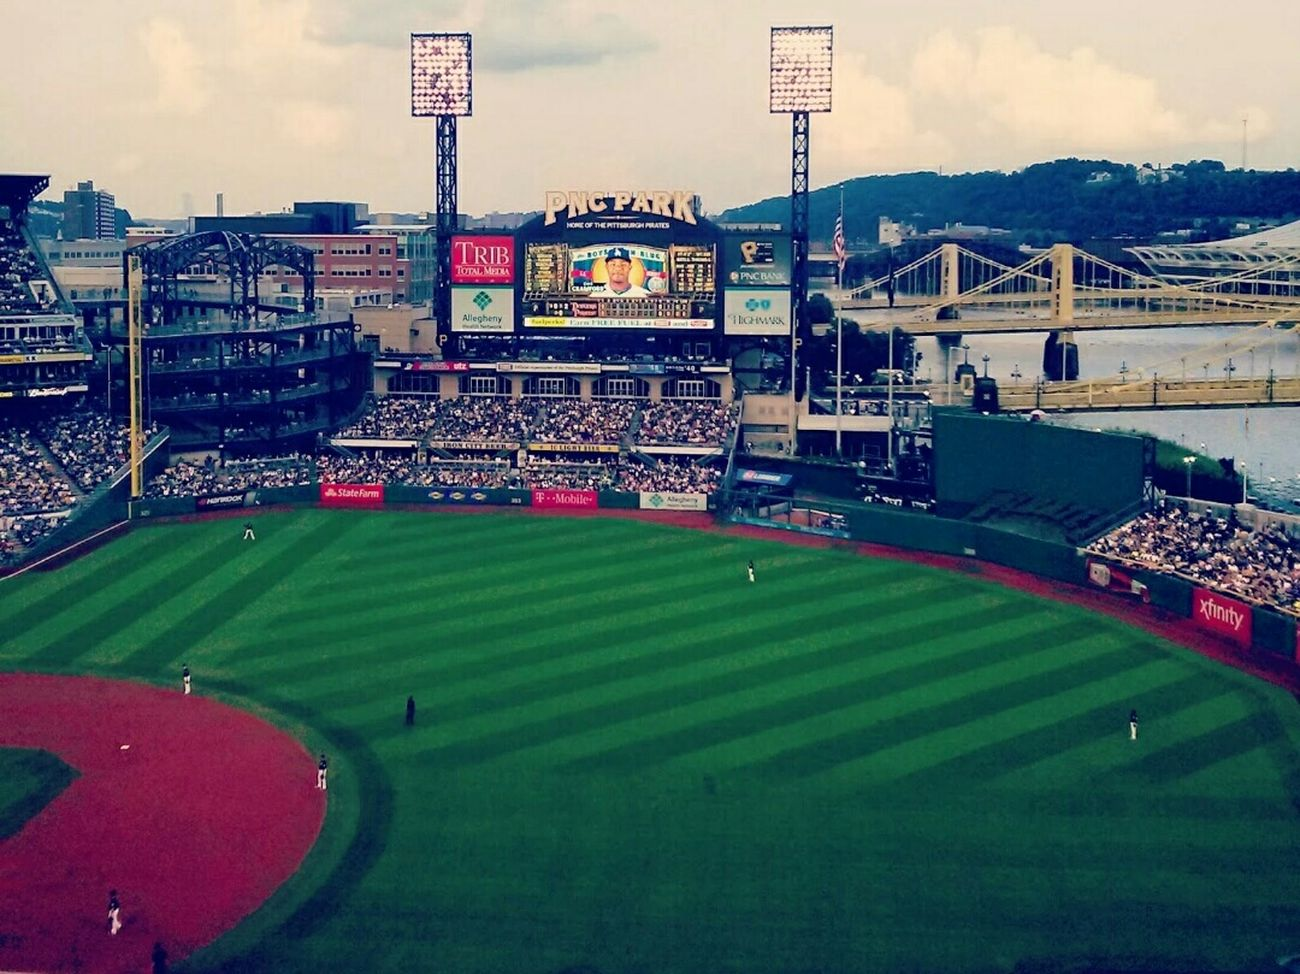 Pittsburgh Pittsburghpirates Baseball Baseball Field Baseball Stadium Watching Baseball Baseball Game